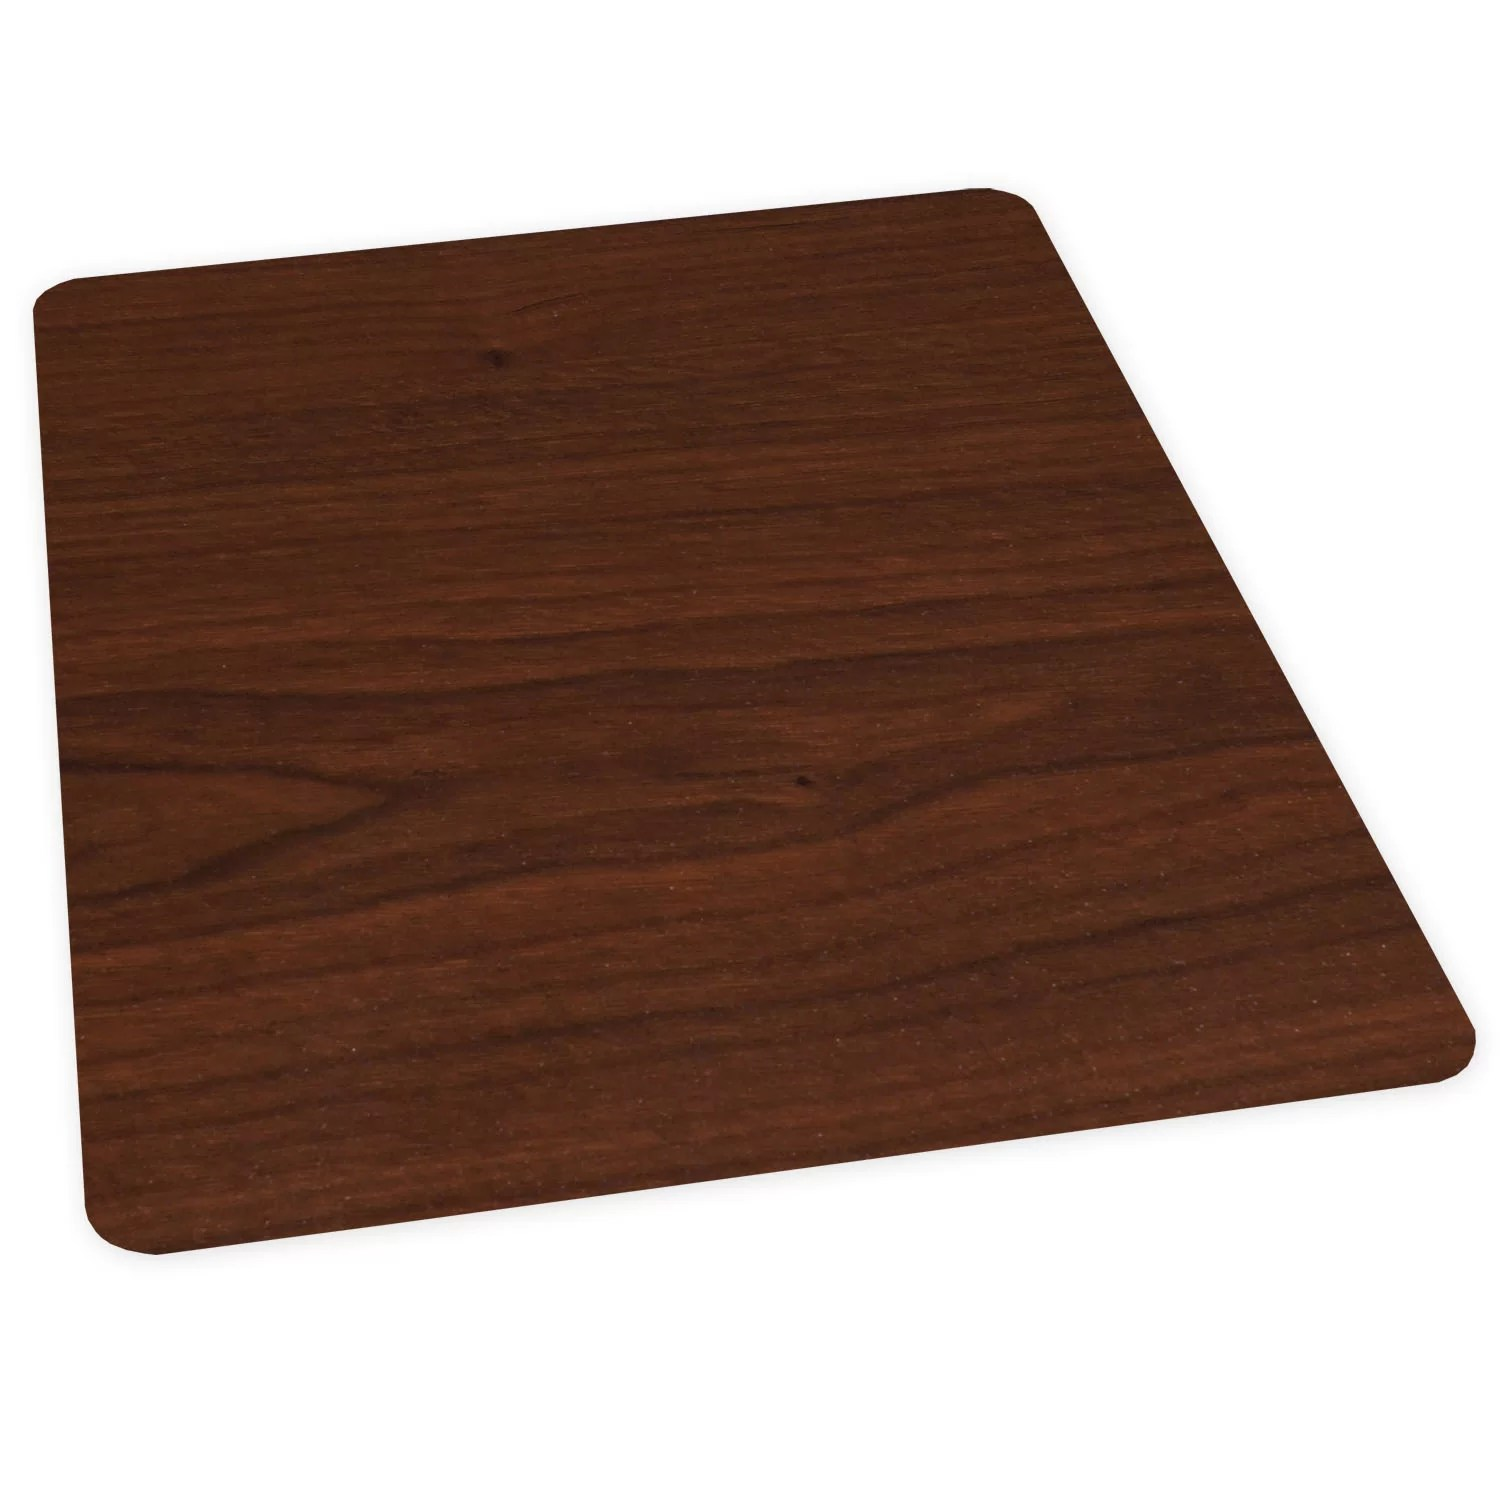 Chair Floor Mat Es Robbins Corporation Wood Veneer Style Hard Floor